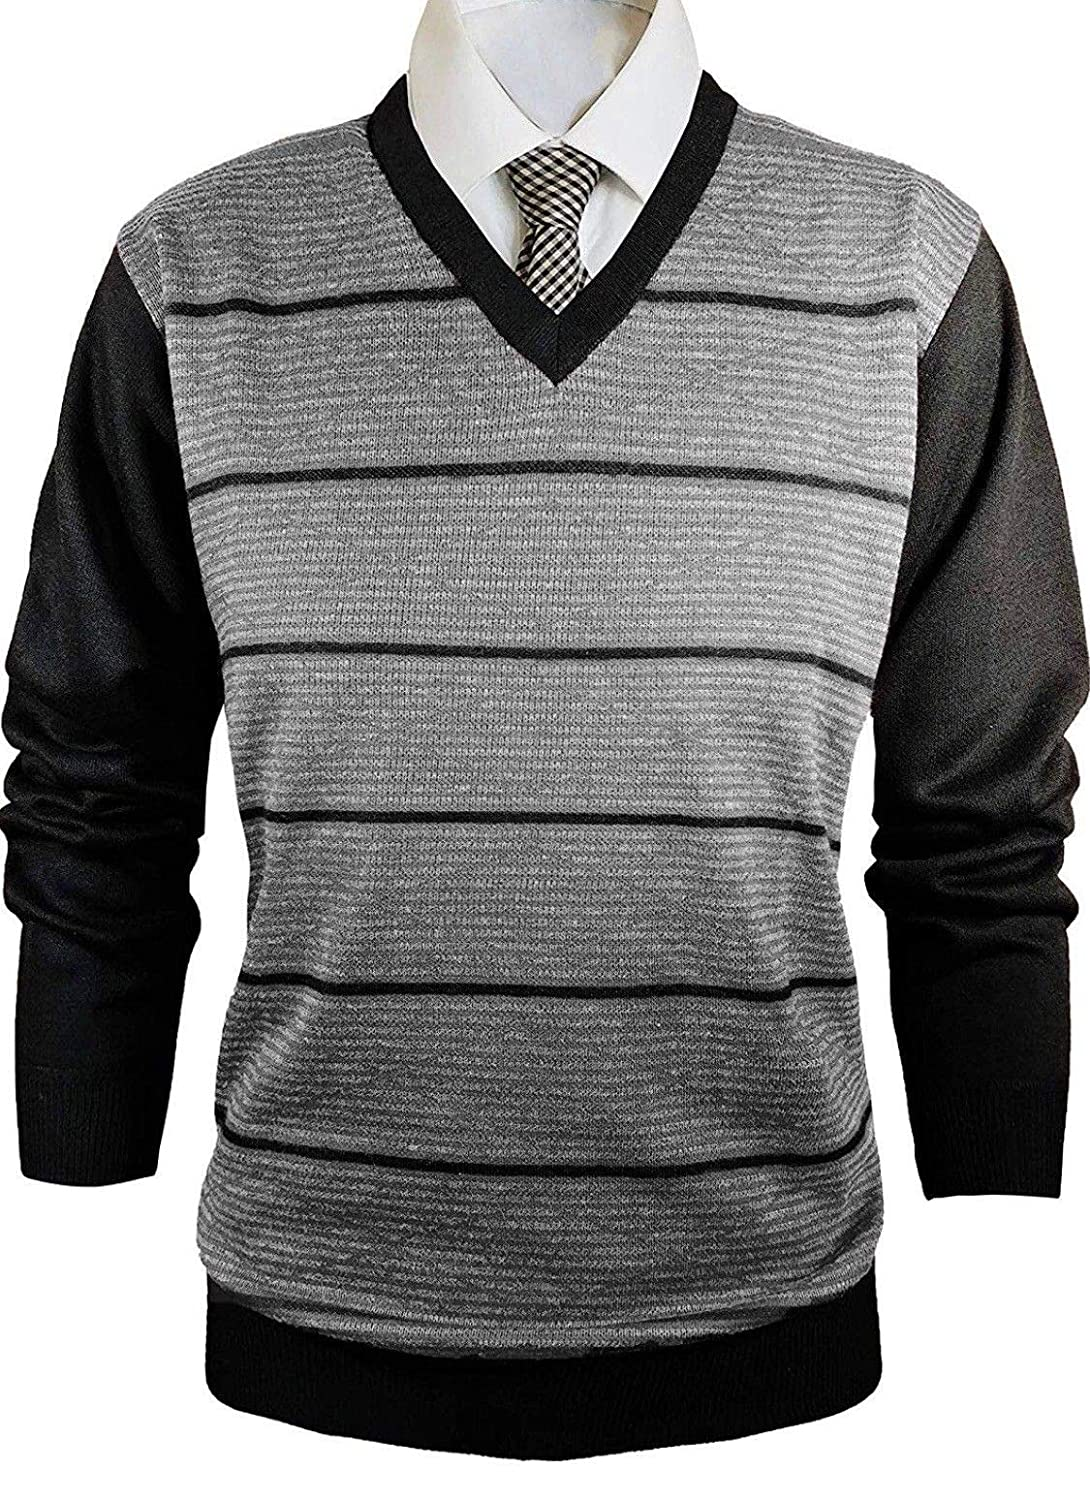 Vitorio Romani by Trends Setters Mens Slim Fit Knitted Long Sleeve V-Neck Sweater in Black